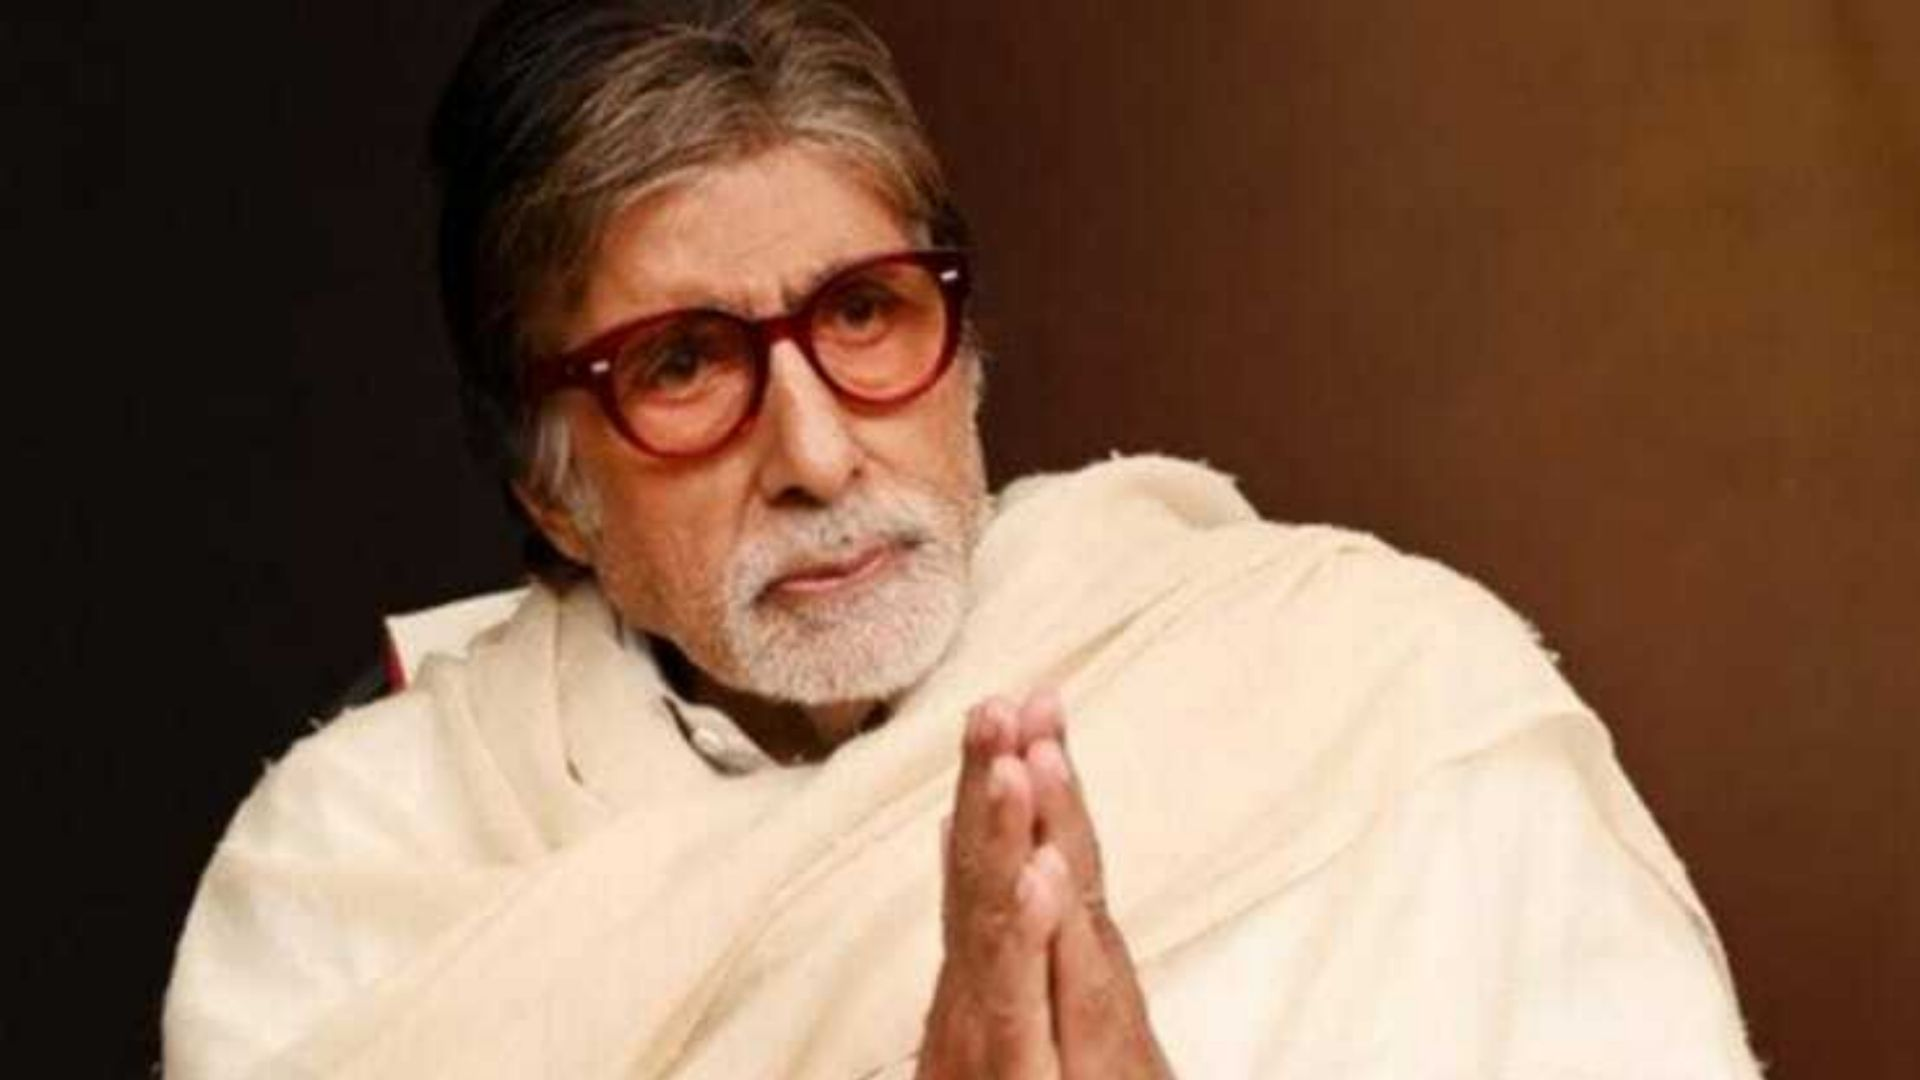 Amitabh Bachchan Wears The Same Suit Again But With This New Balenciaga Shoes